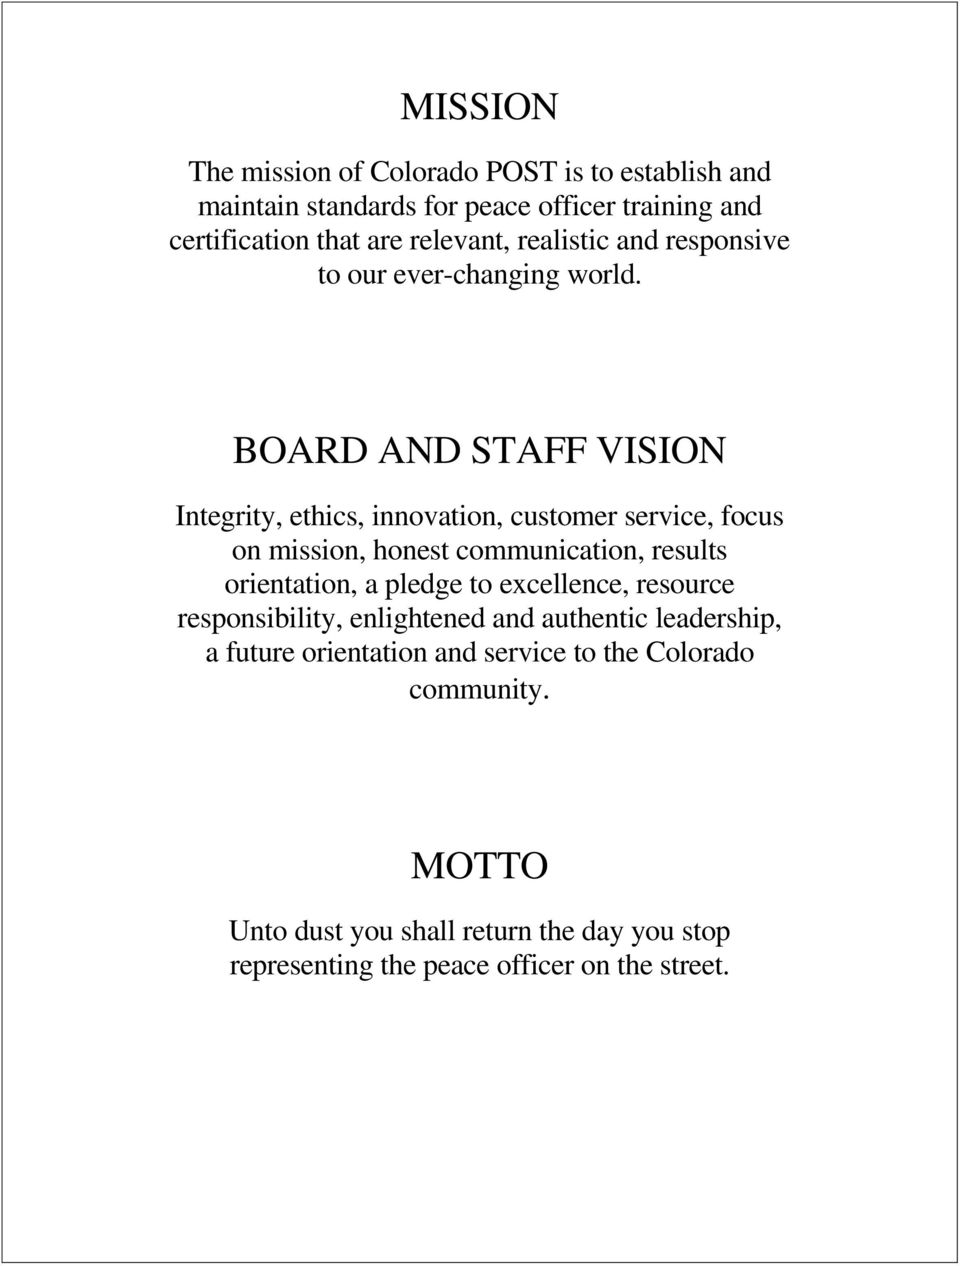 BOARD AND STAFF VISION Integrity, ethics, innovation, customer service, focus on mission, honest communication, results orientation, a pledge